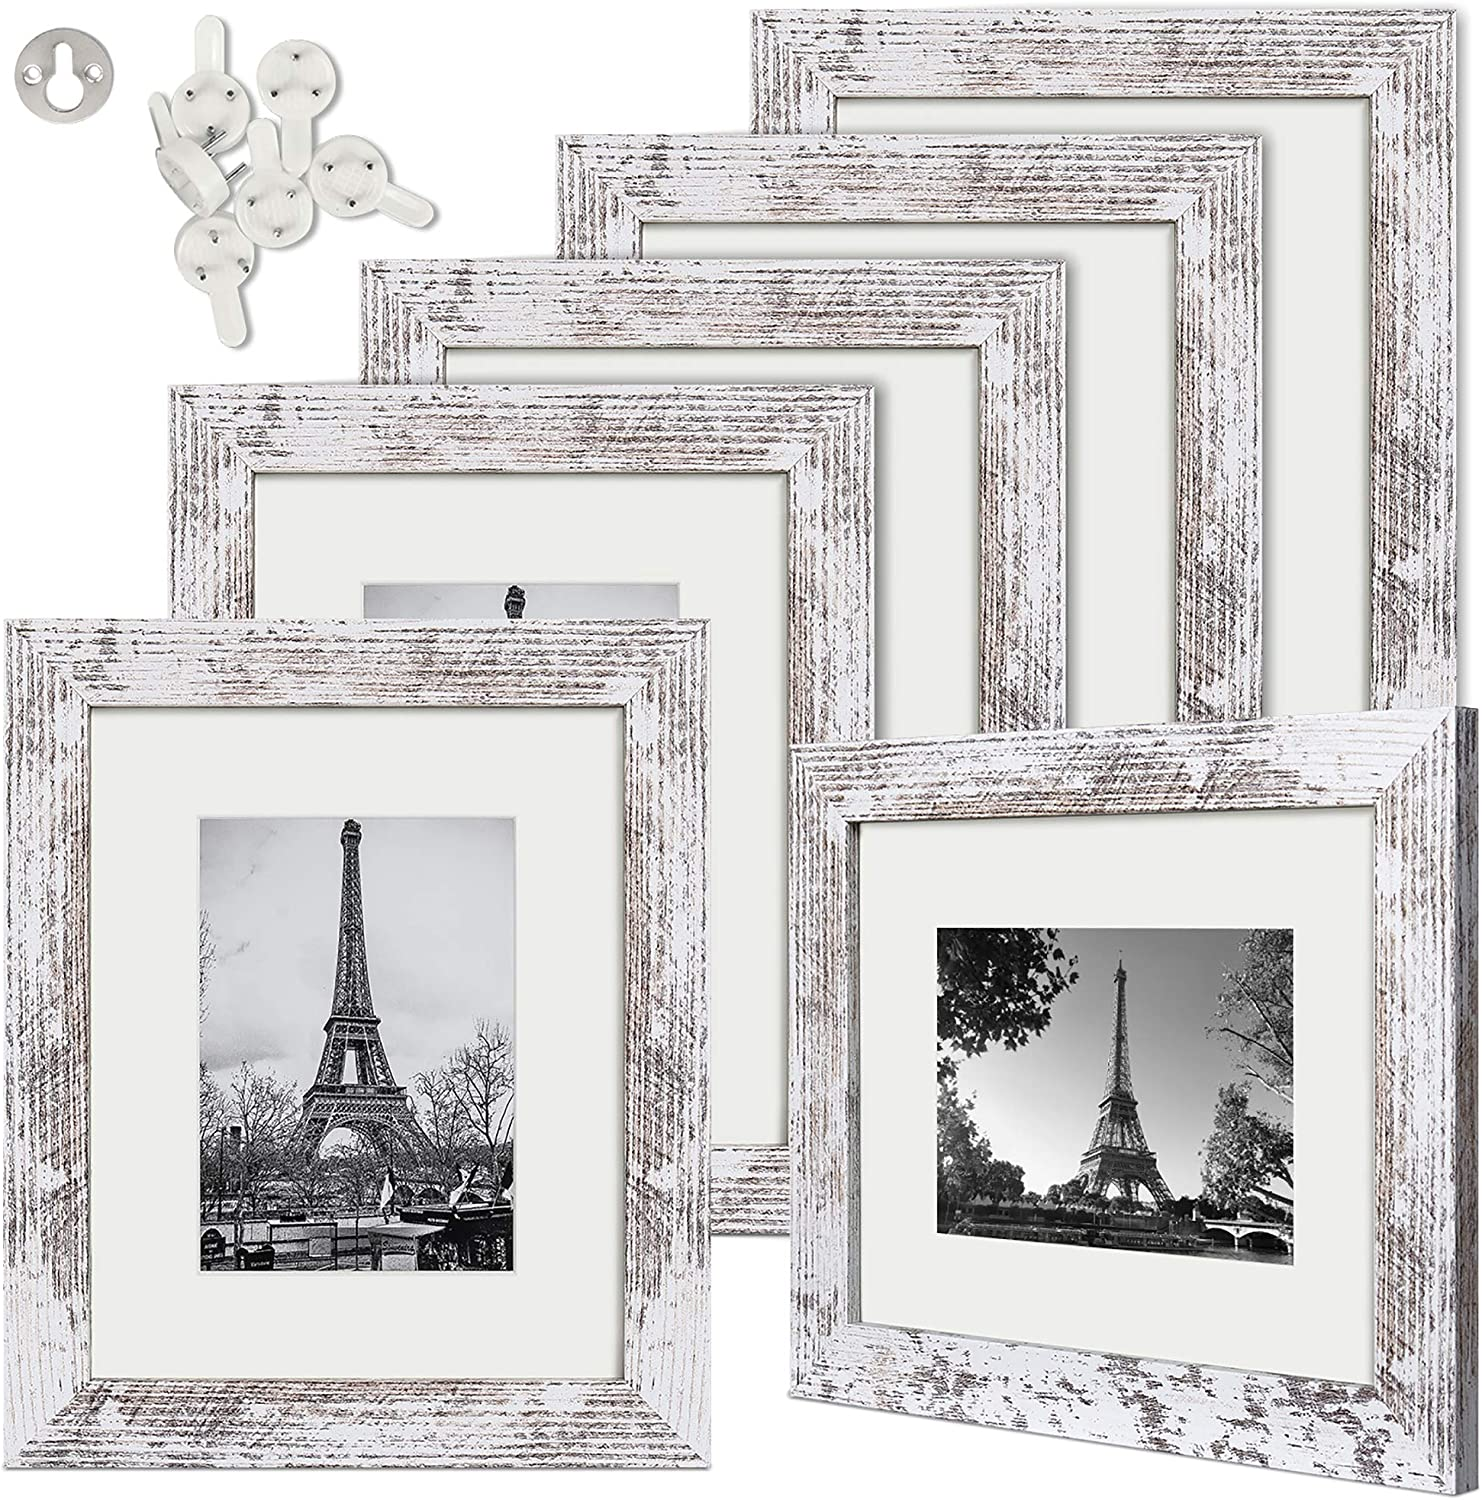 upsimples 8x10 Picture Frame Distressed Real Di with Low price Super sale period limited White Glass